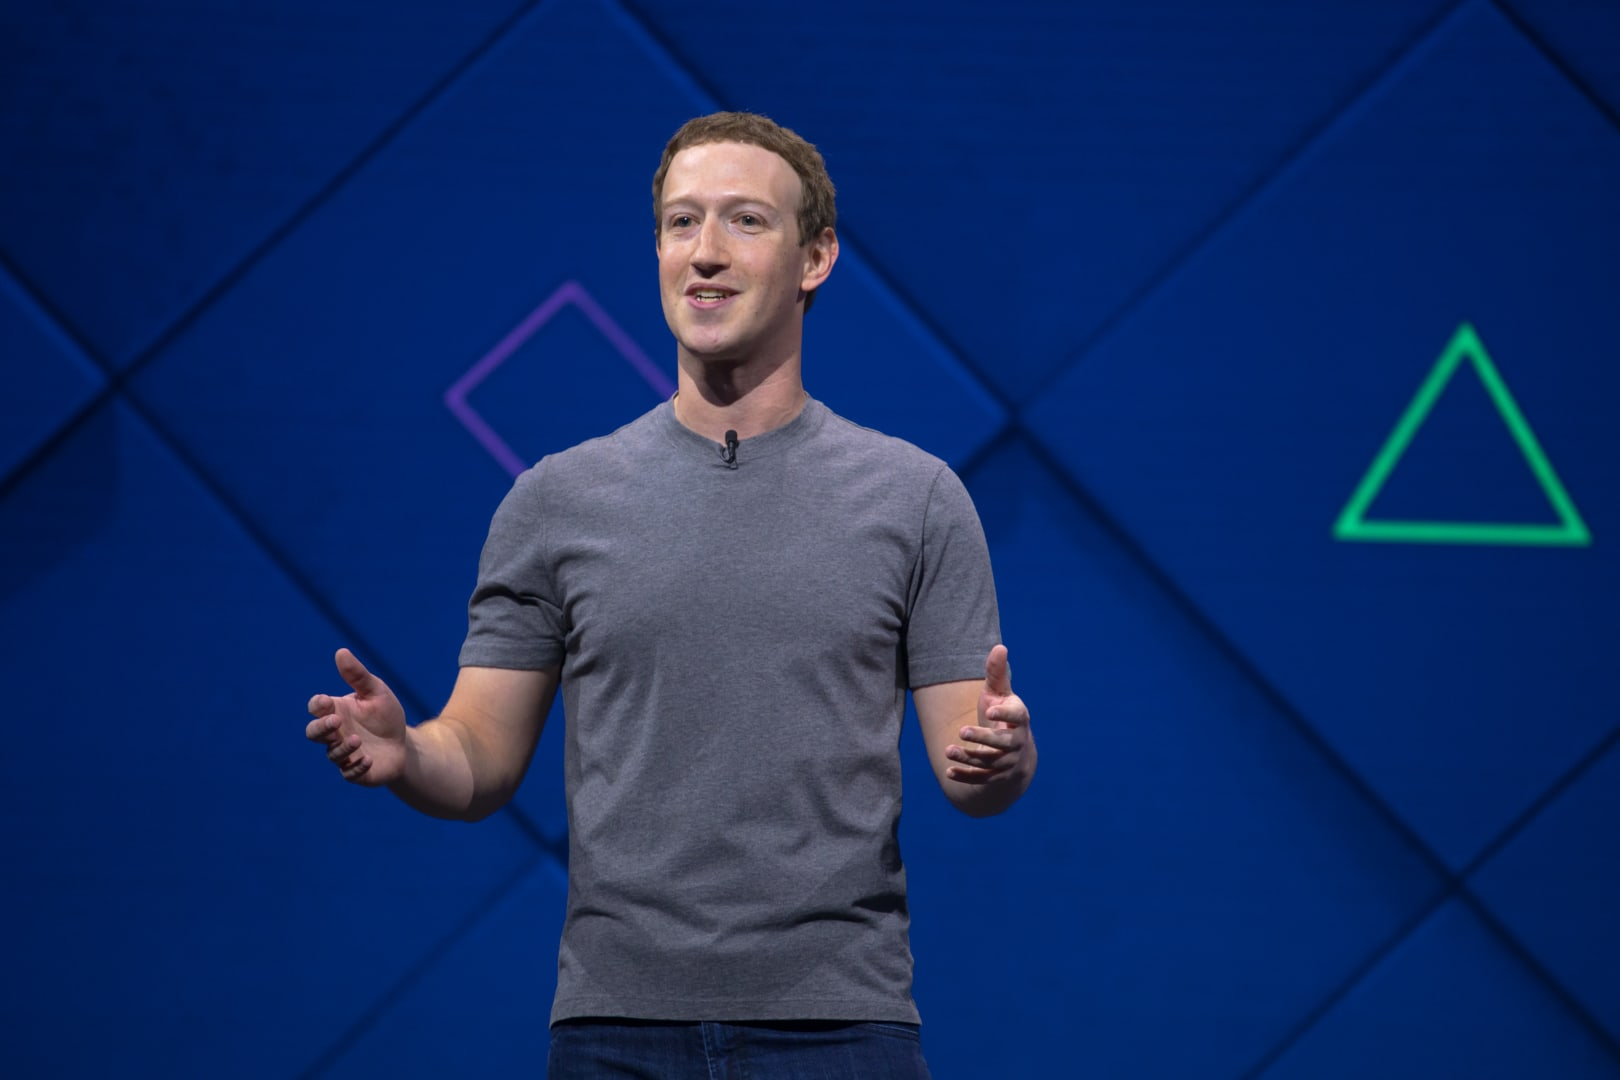 Facebook gets dumped from an S&P index that tracks socially responsible companies